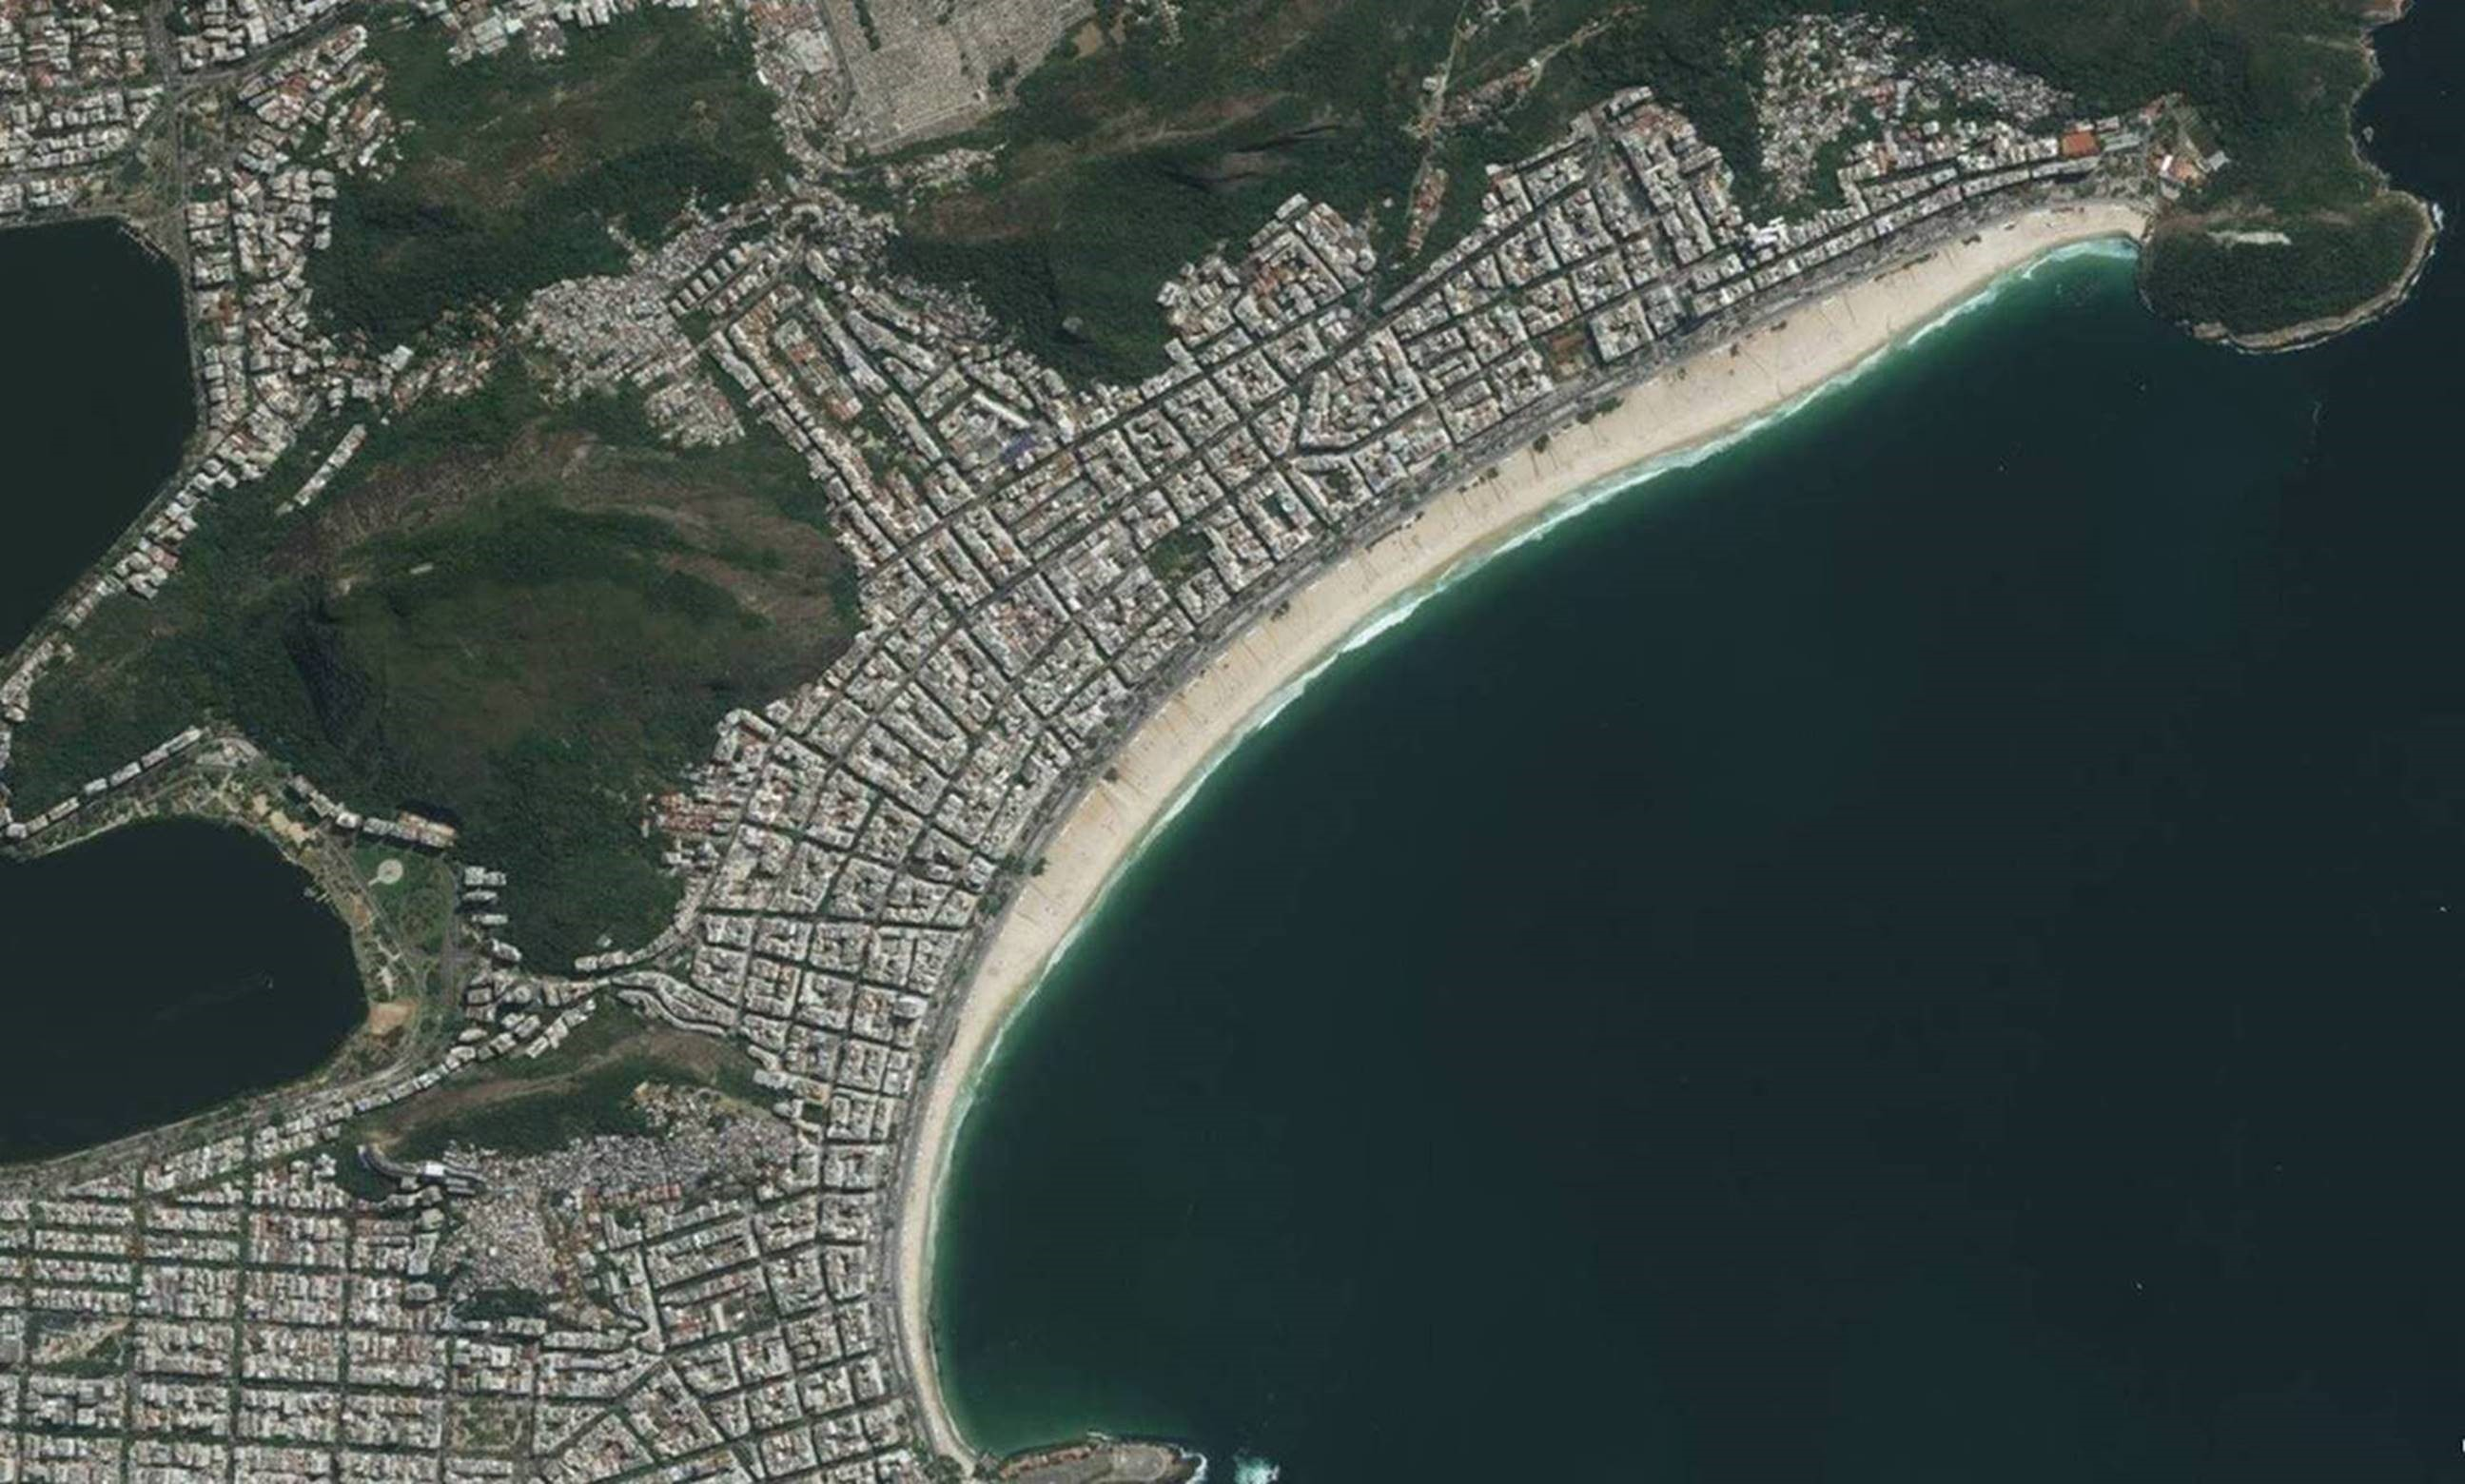 Over 8.5M Square Kilometers of Imagery for Brazil Released